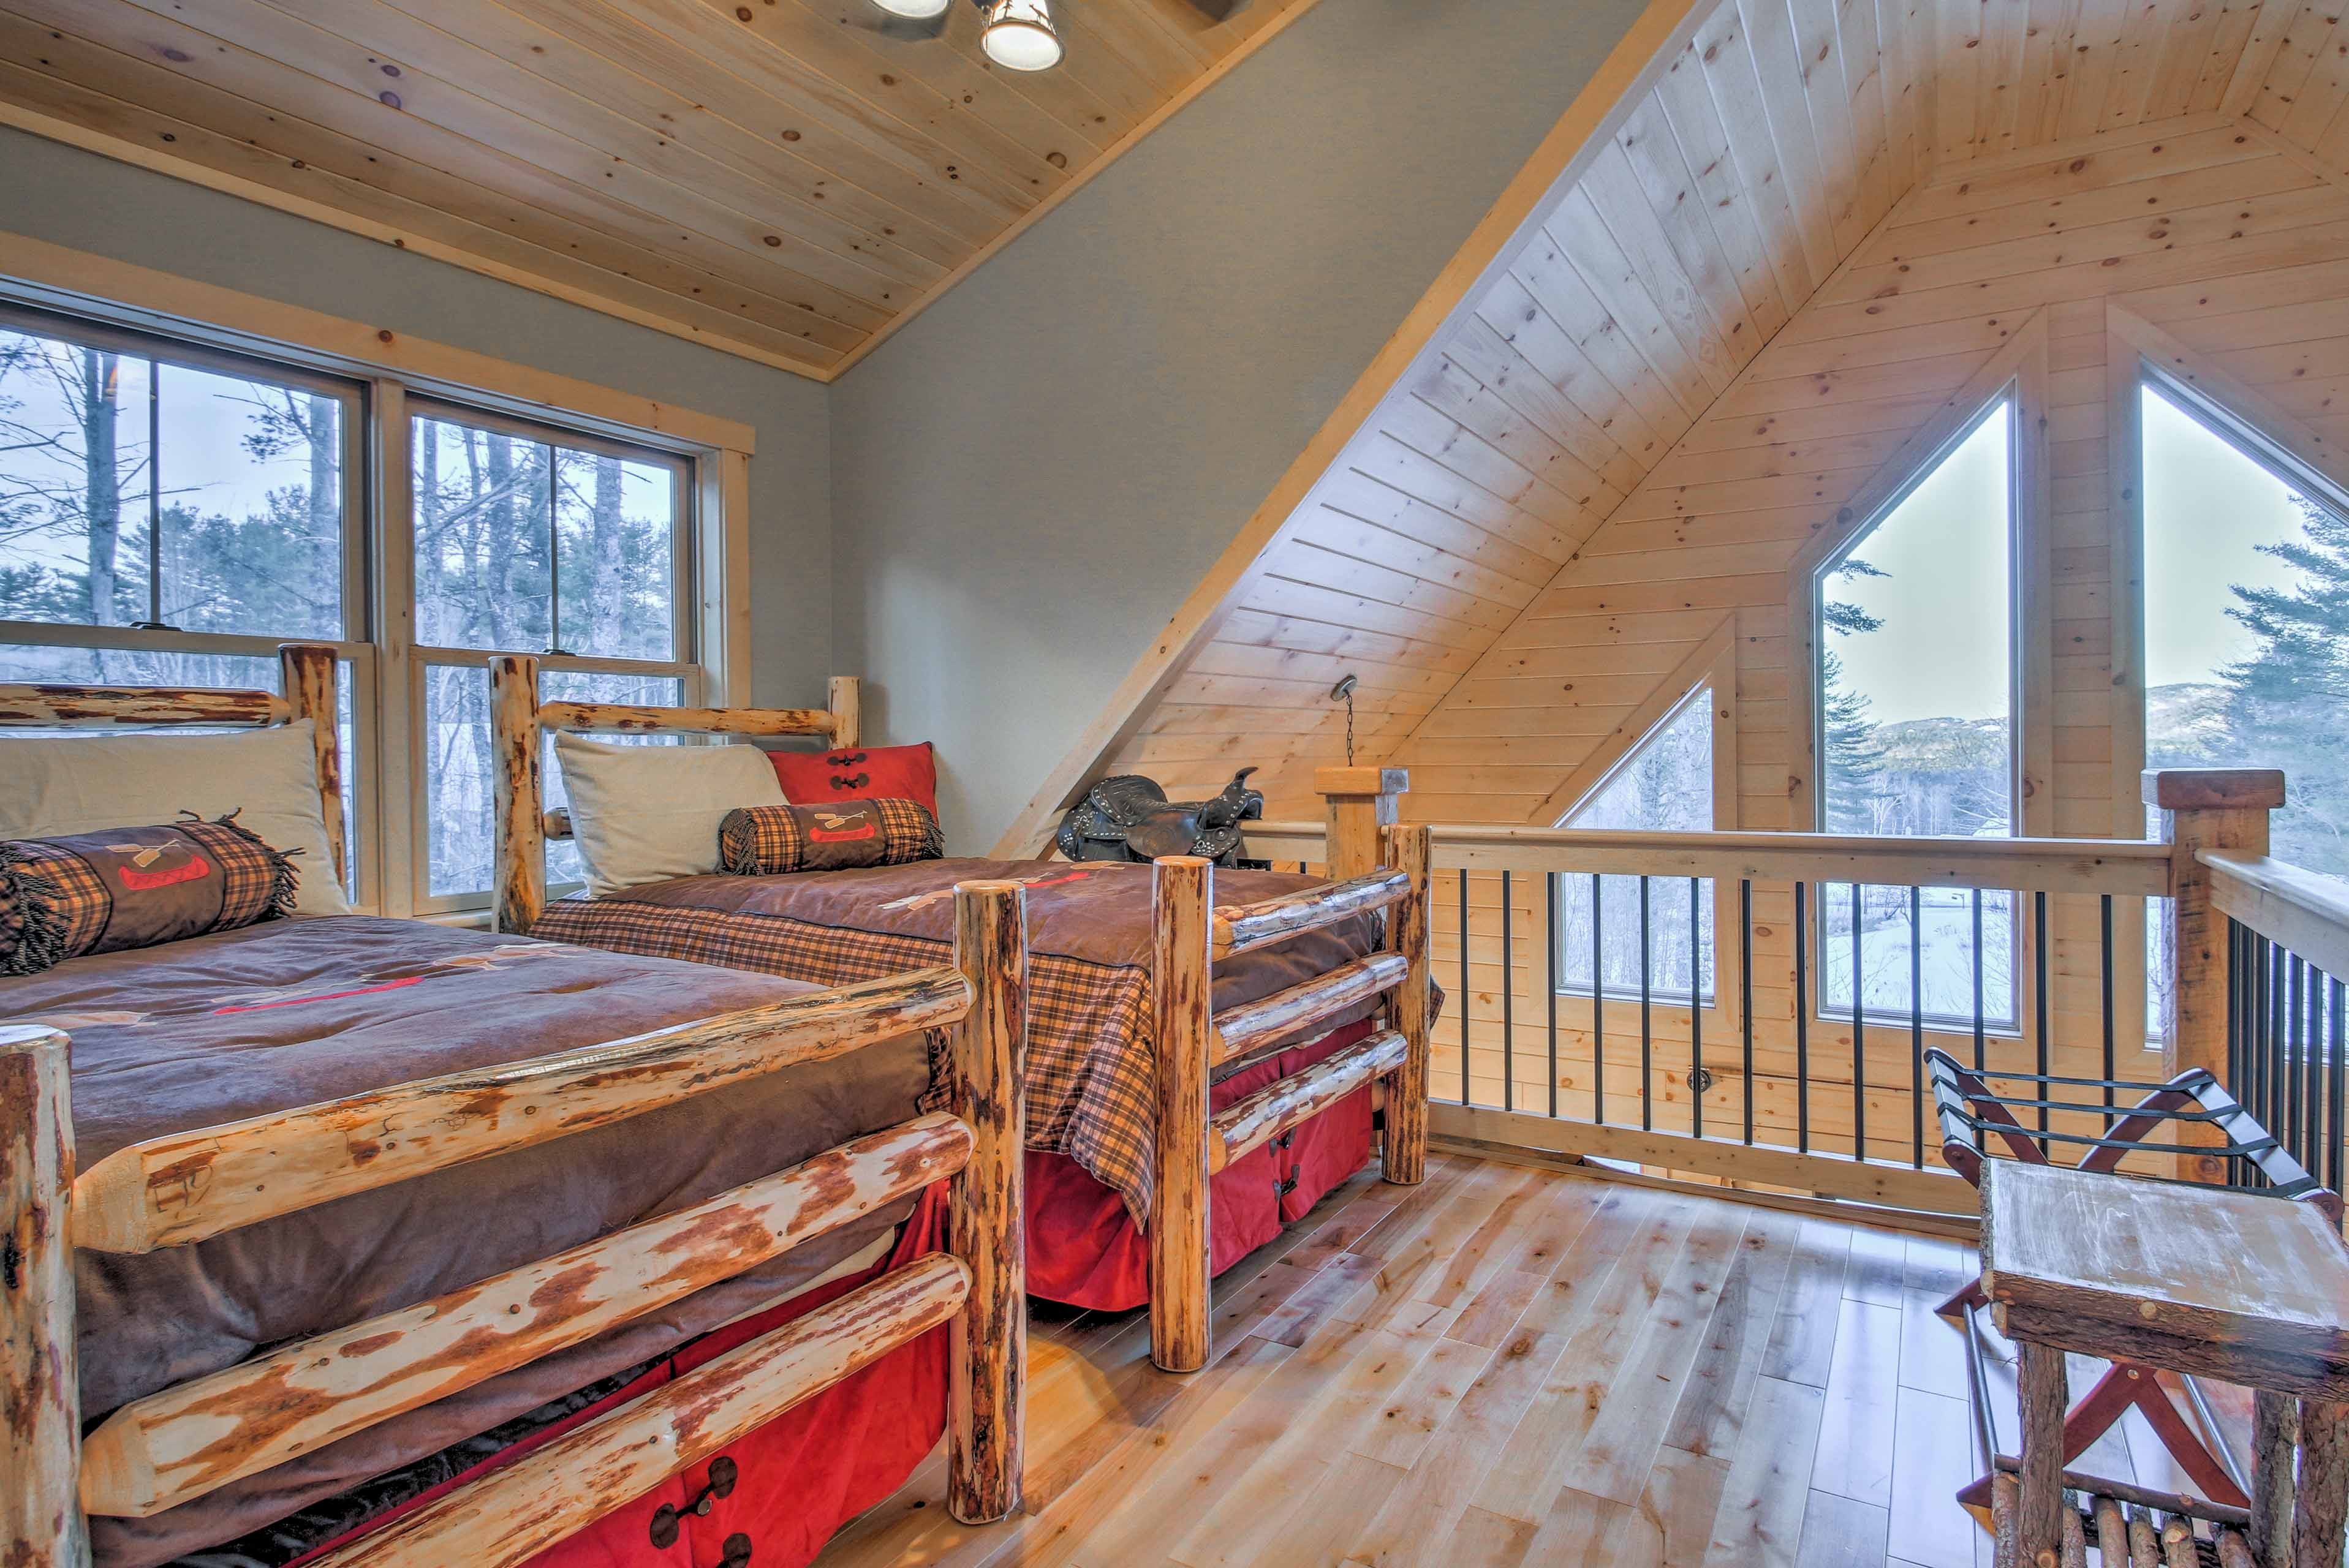 Kids will love this unique lofted space!